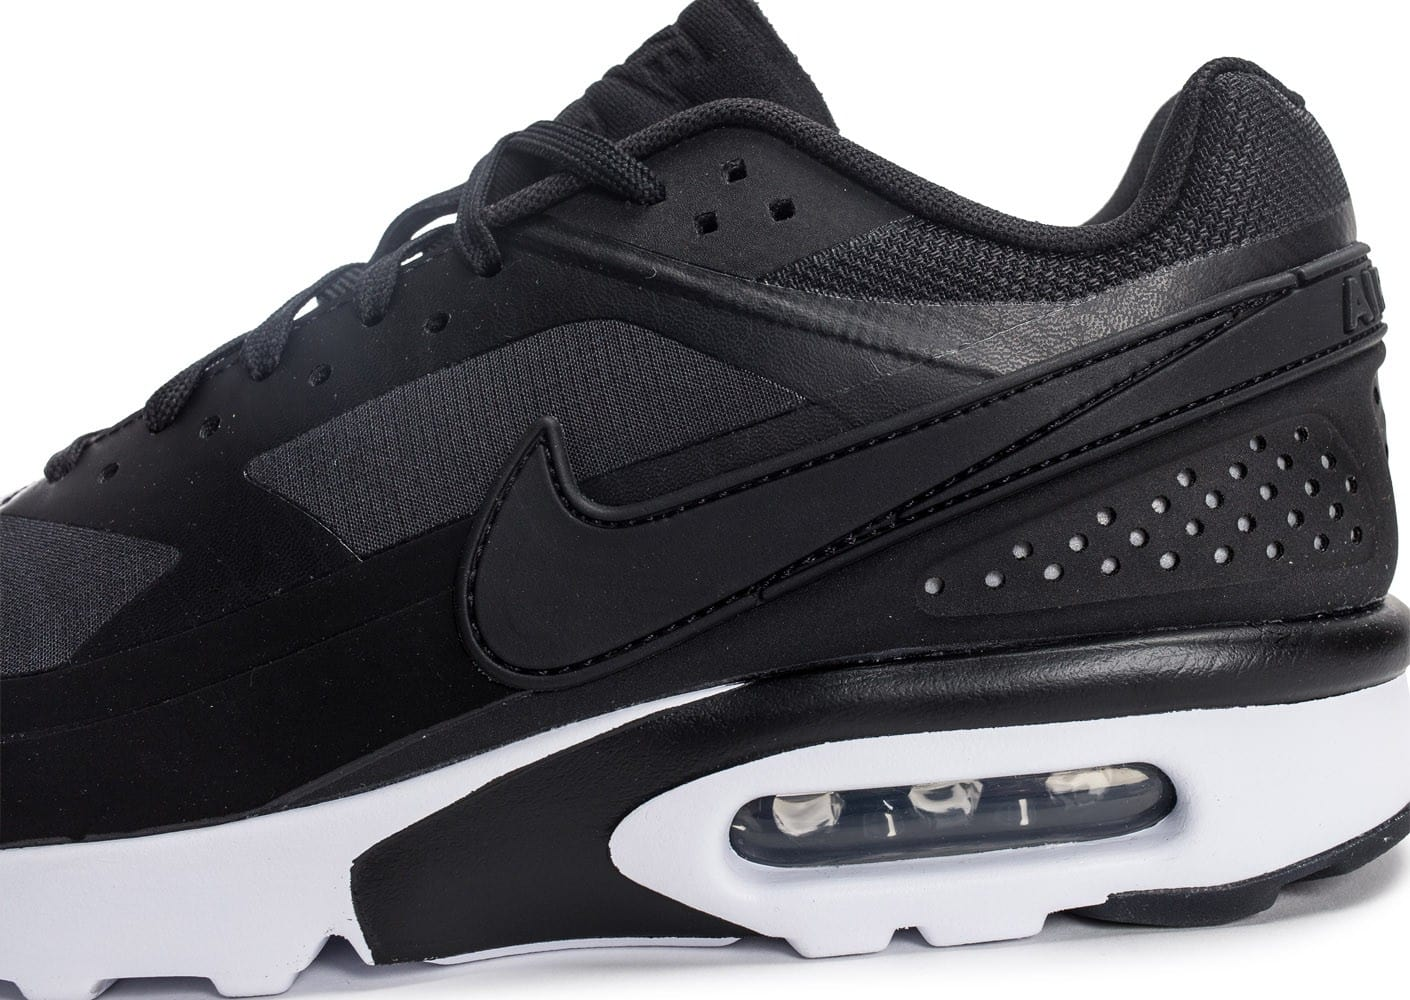 lowest price b3b72 30948 ... Chaussures Nike Air Max BW Ultra Leather anthracite vue dessus